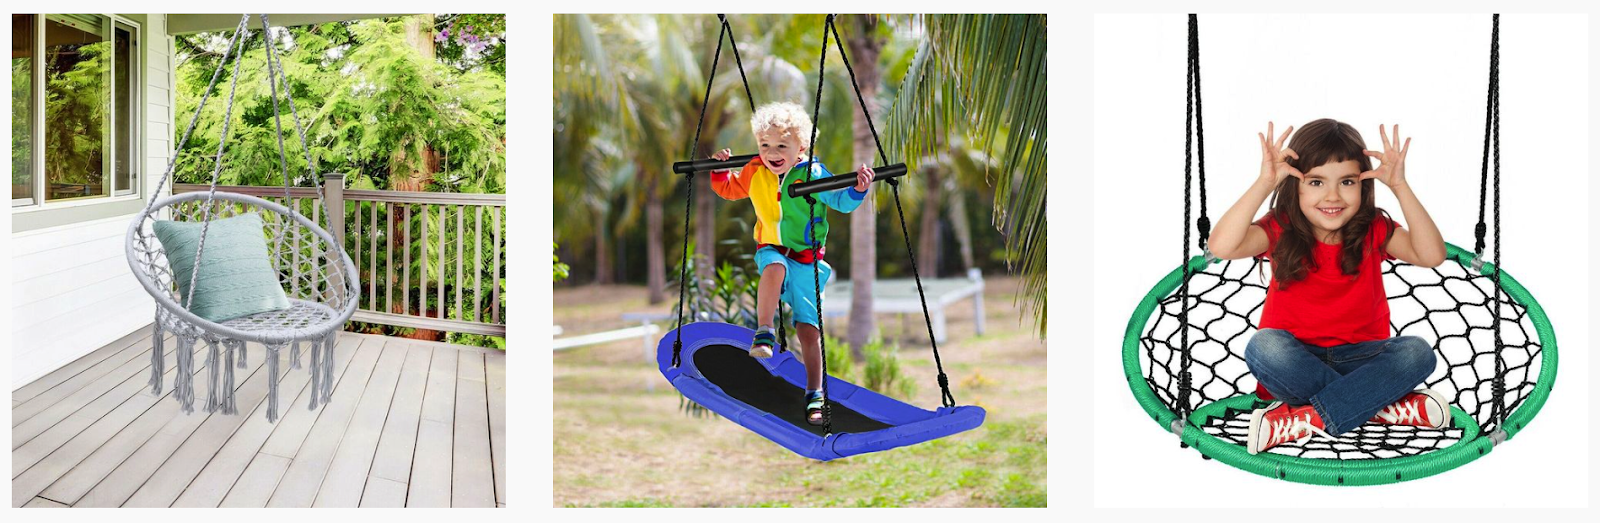 Play Smart USA | Kids playing on outdoor hanging swings